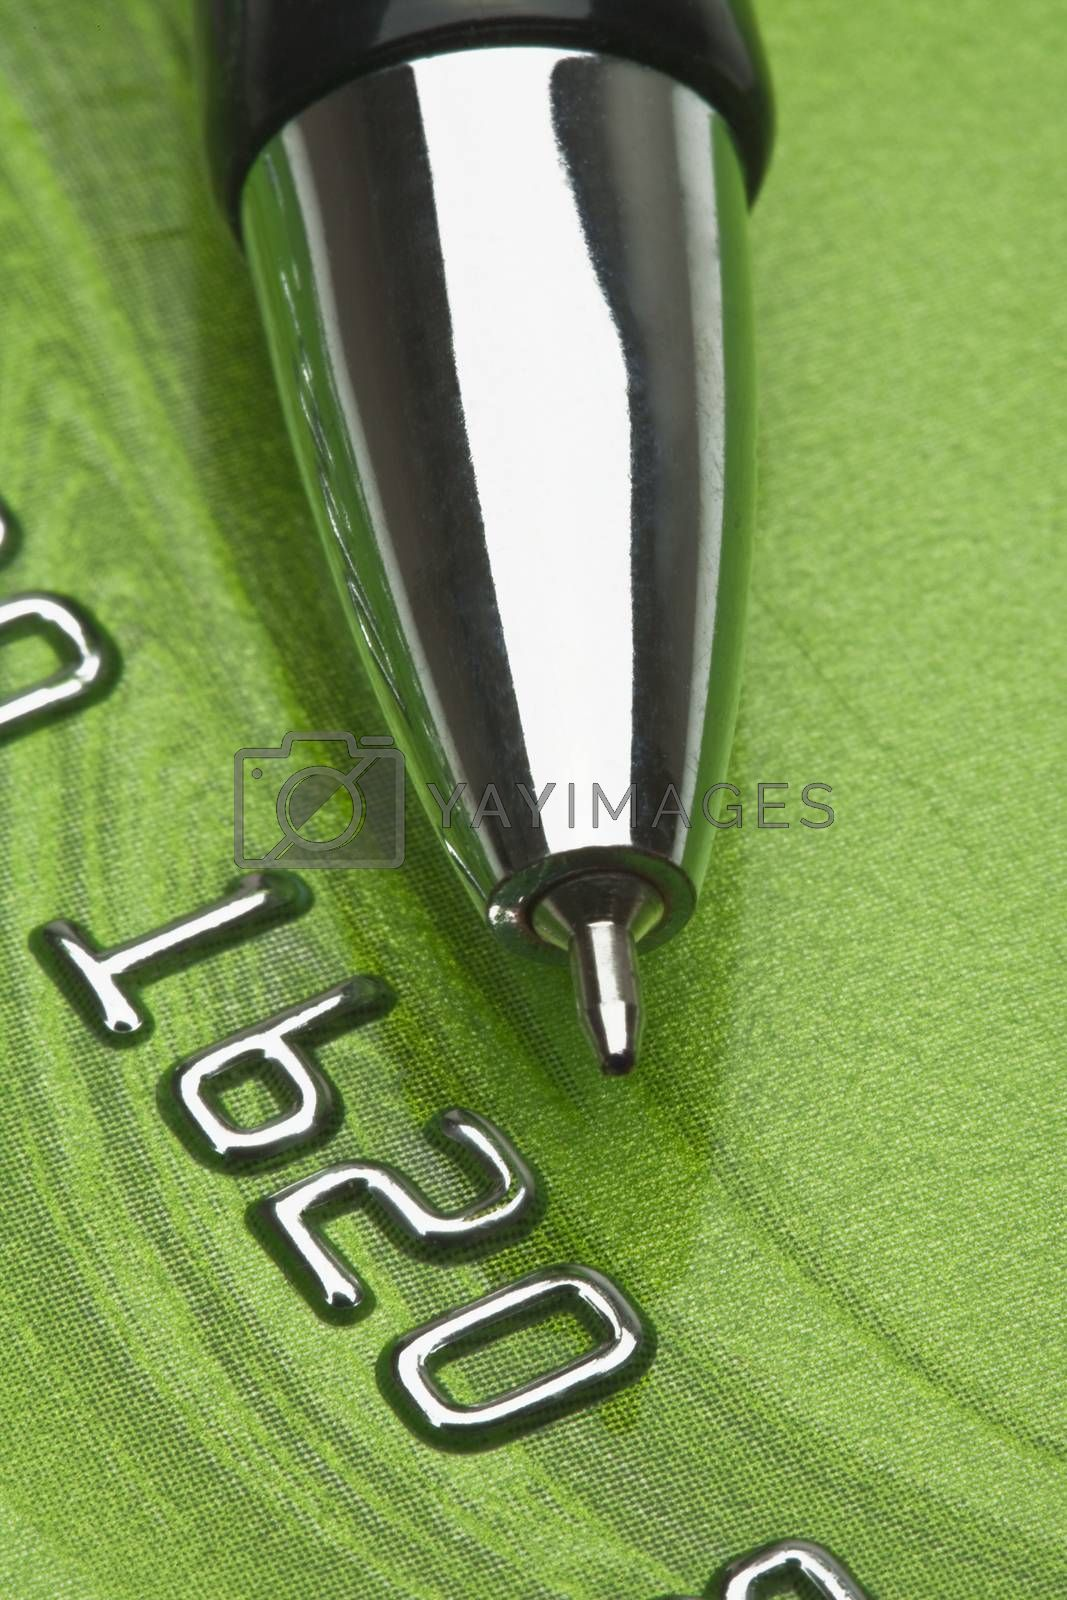 Royalty free image of credit card and pen by courtyardpix